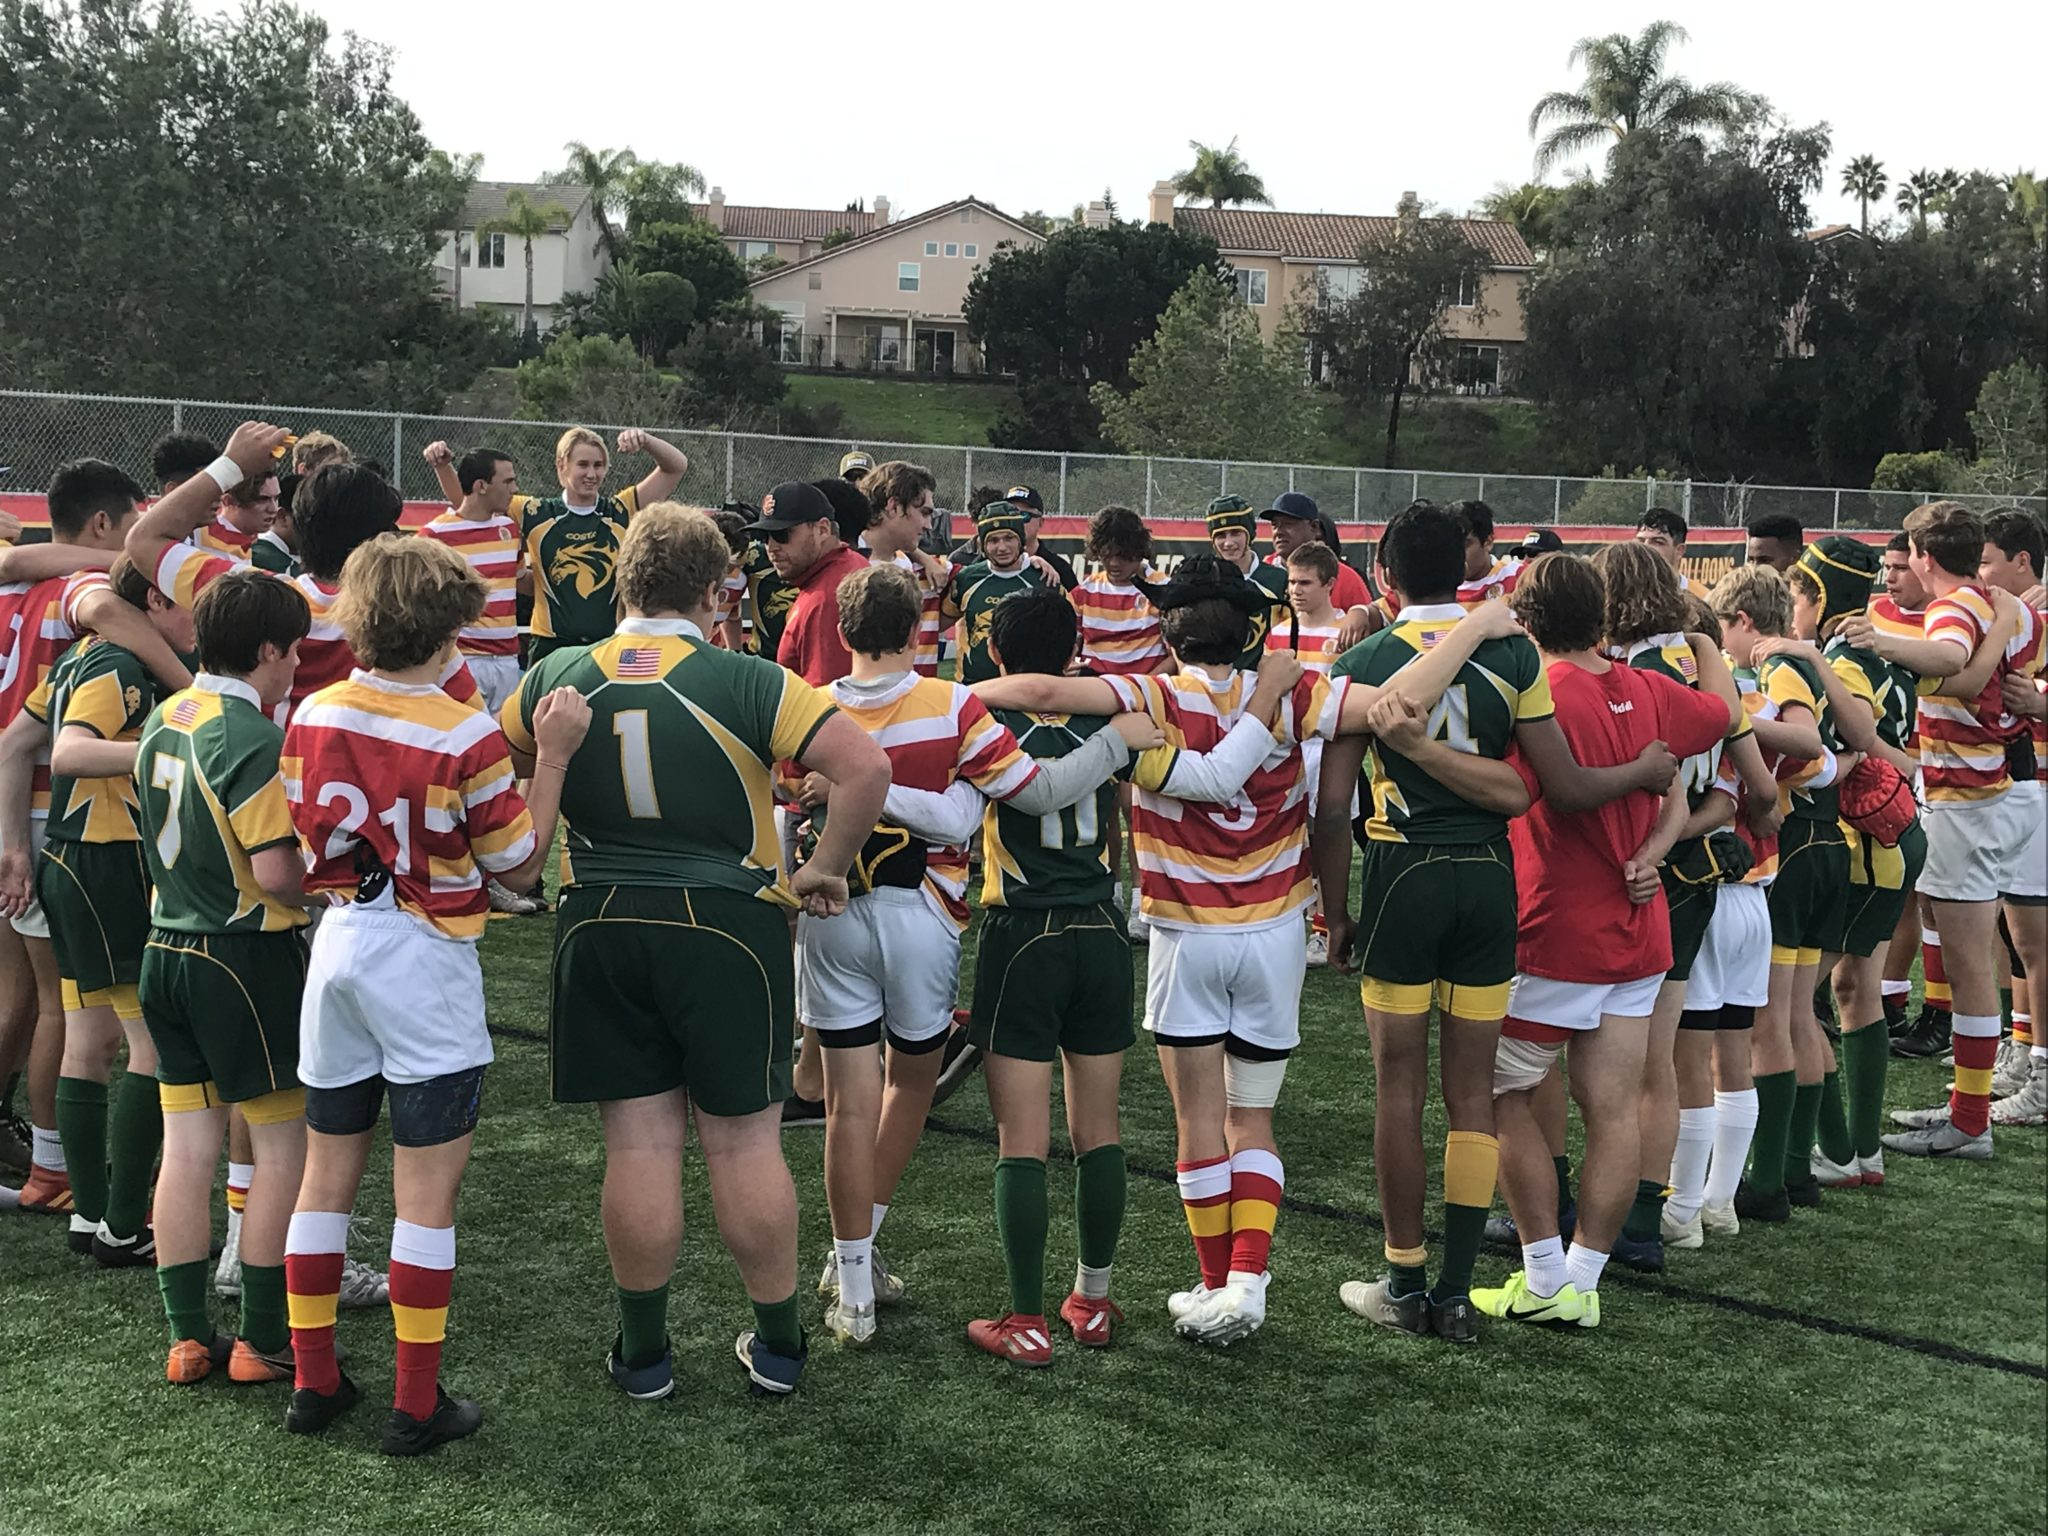 http://www.costarugby.com/wp-content/uploads/2020/01/IMG_3504.jpg